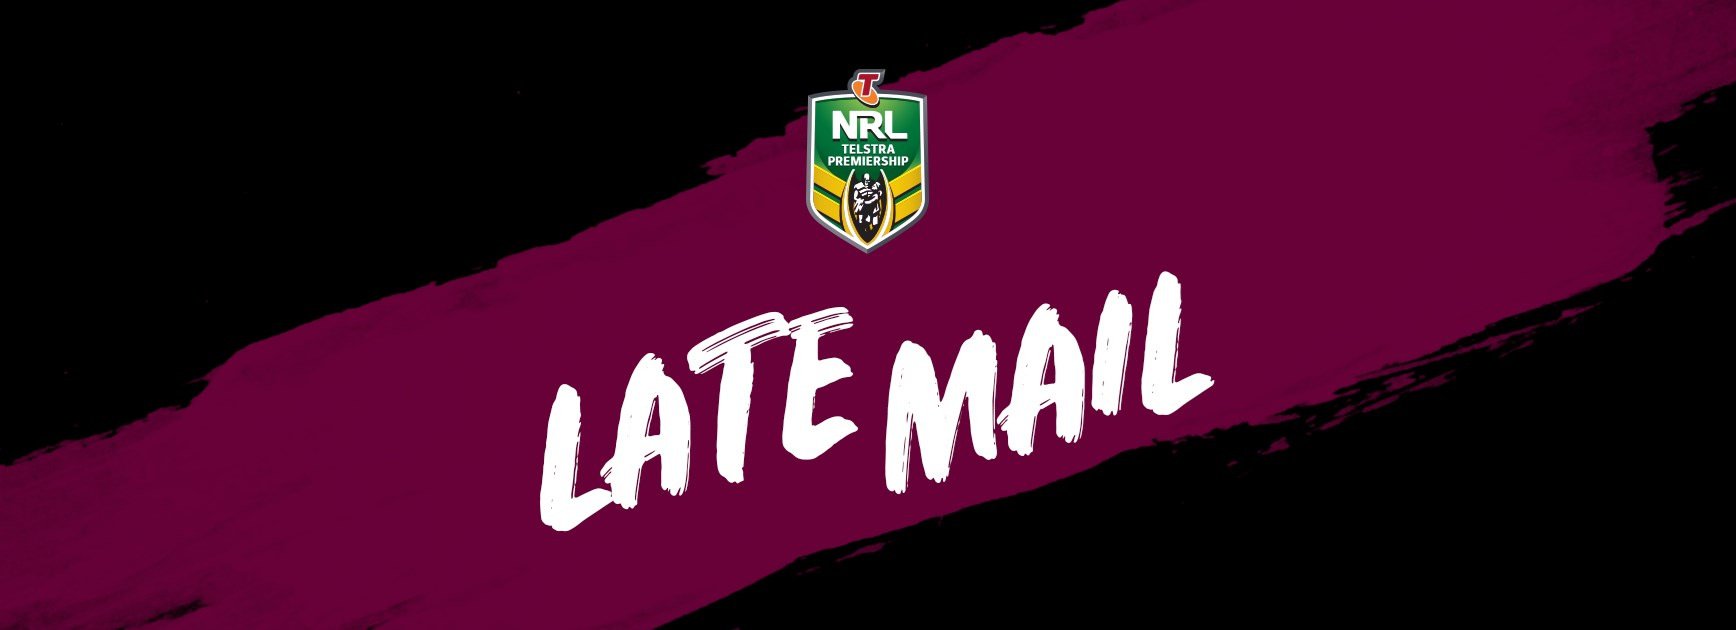 Round 6 NRL Late Mail v Wests Tigers